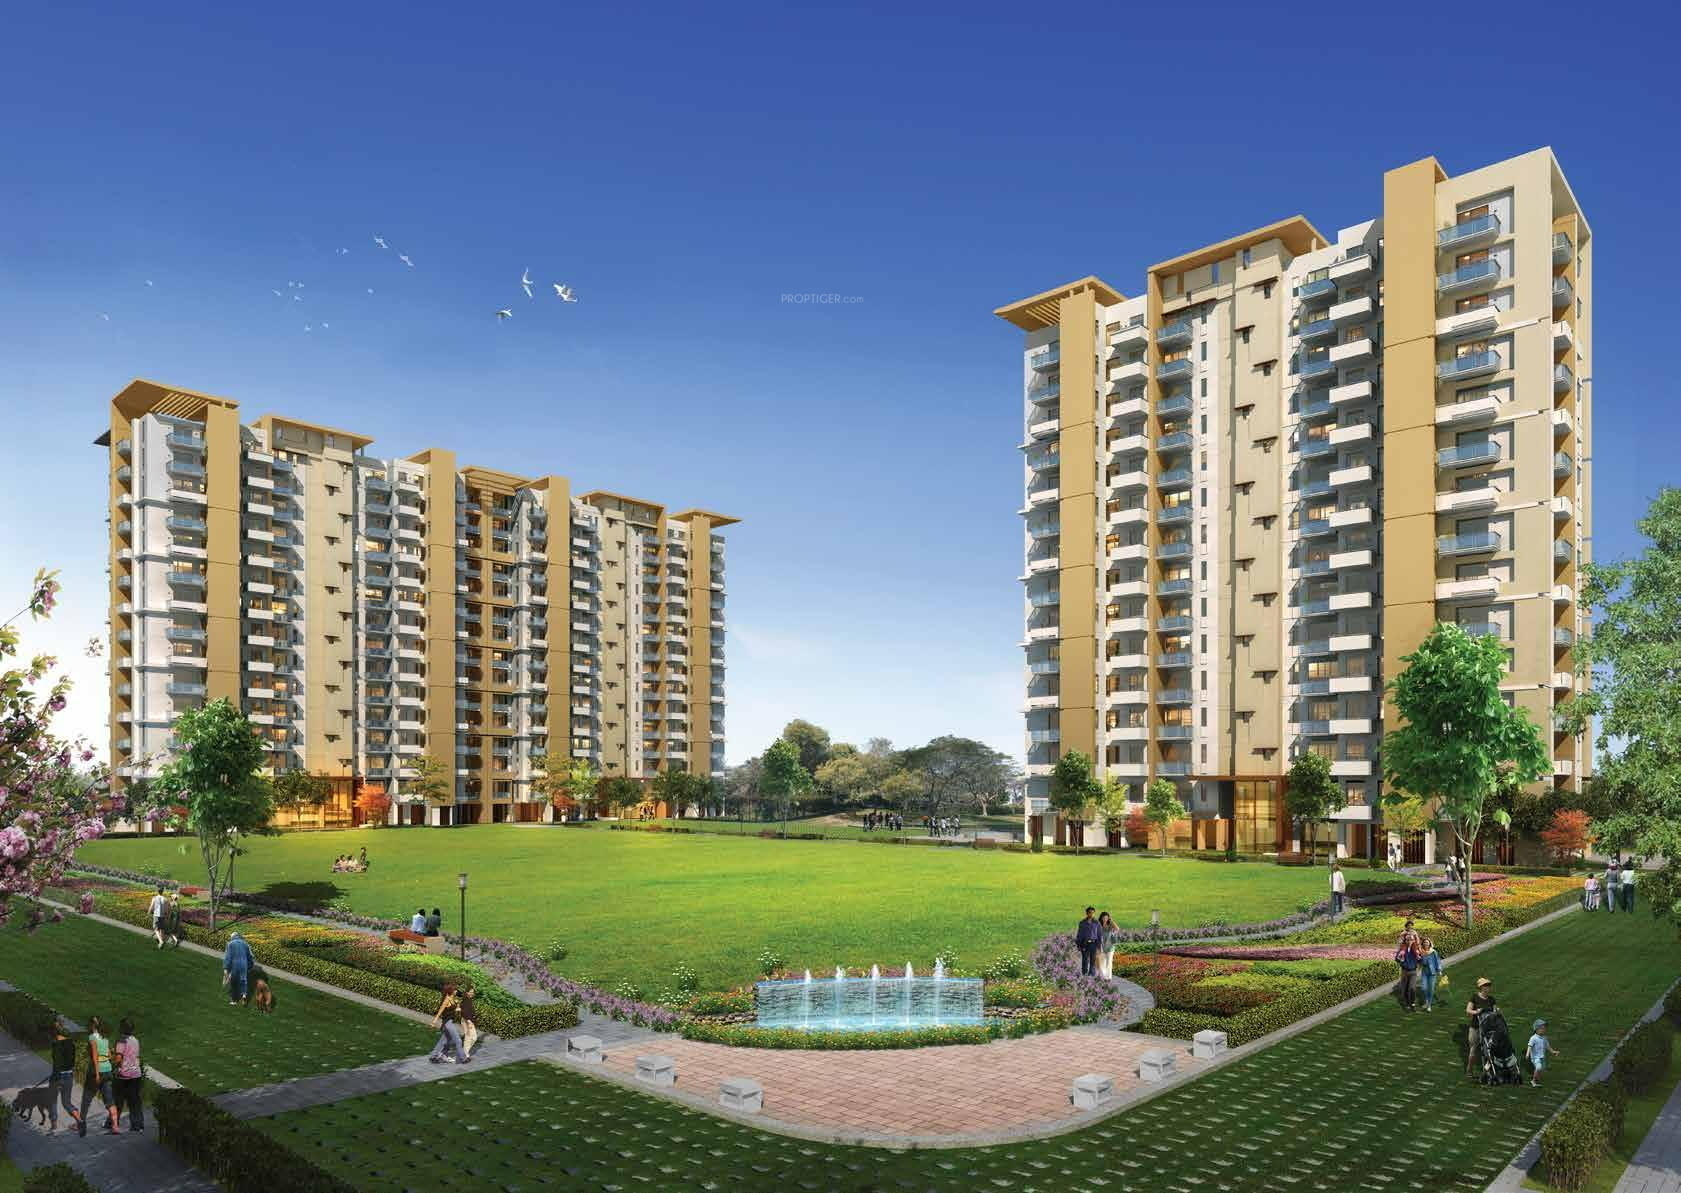 Emaar Imperial Gardens - Apartments in Gurgaon